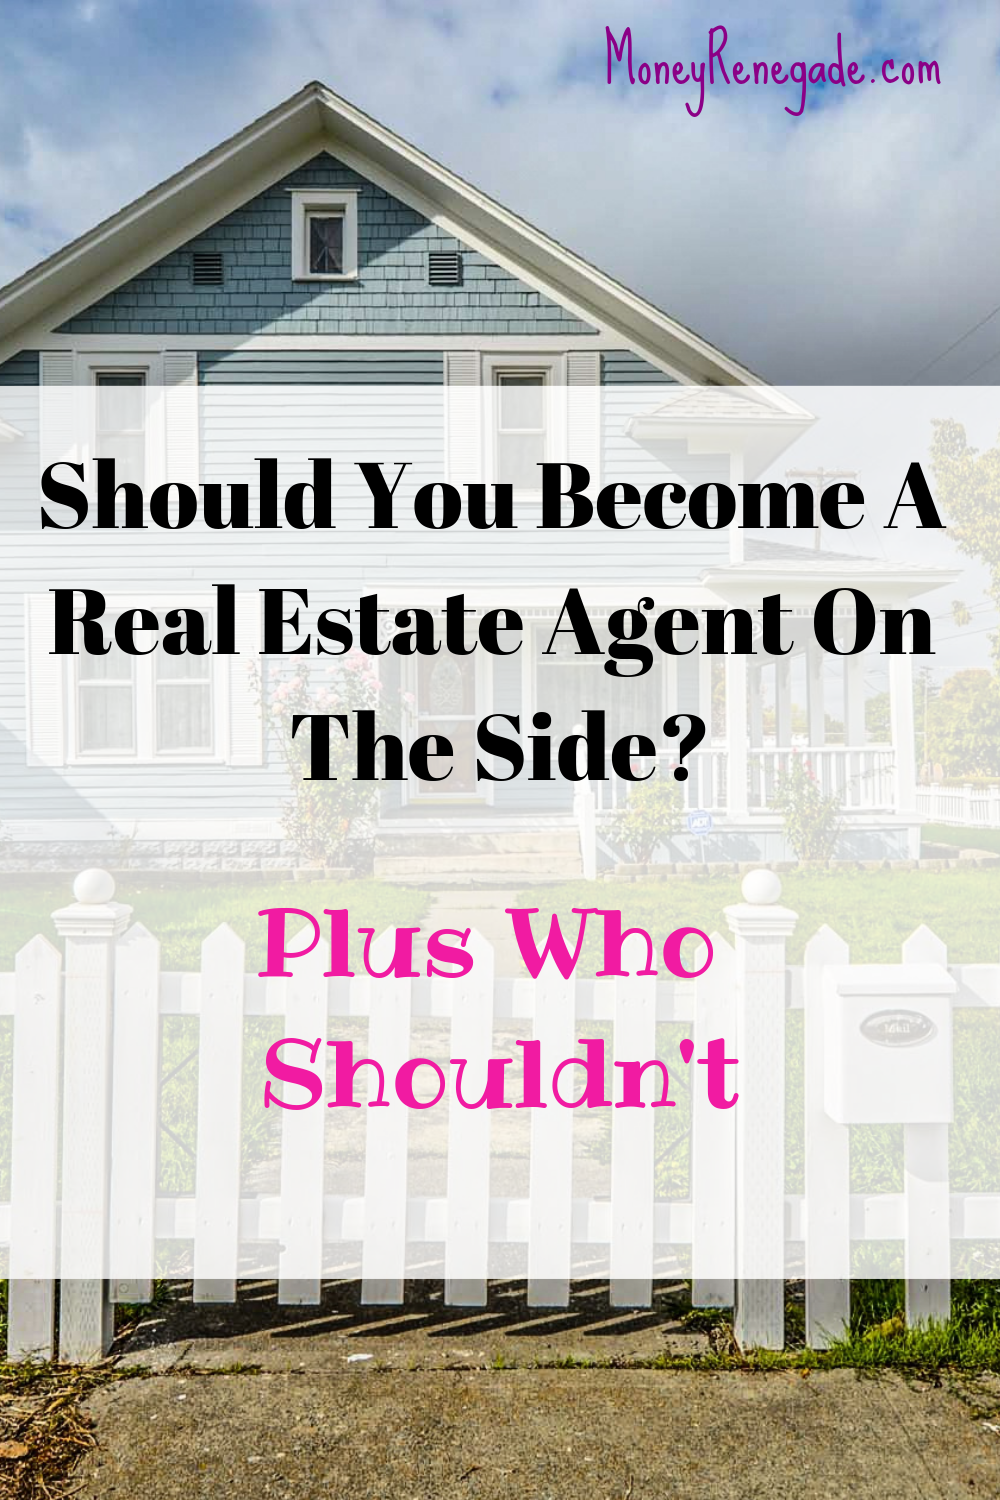 Should You Become A Real Estate Agent On The Side?